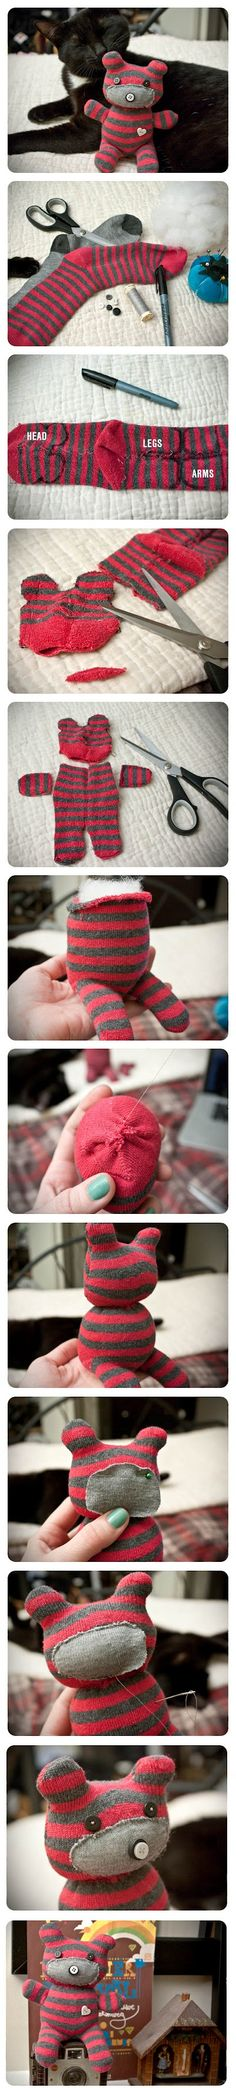 Must make this cute little teddy bear with my old socks!